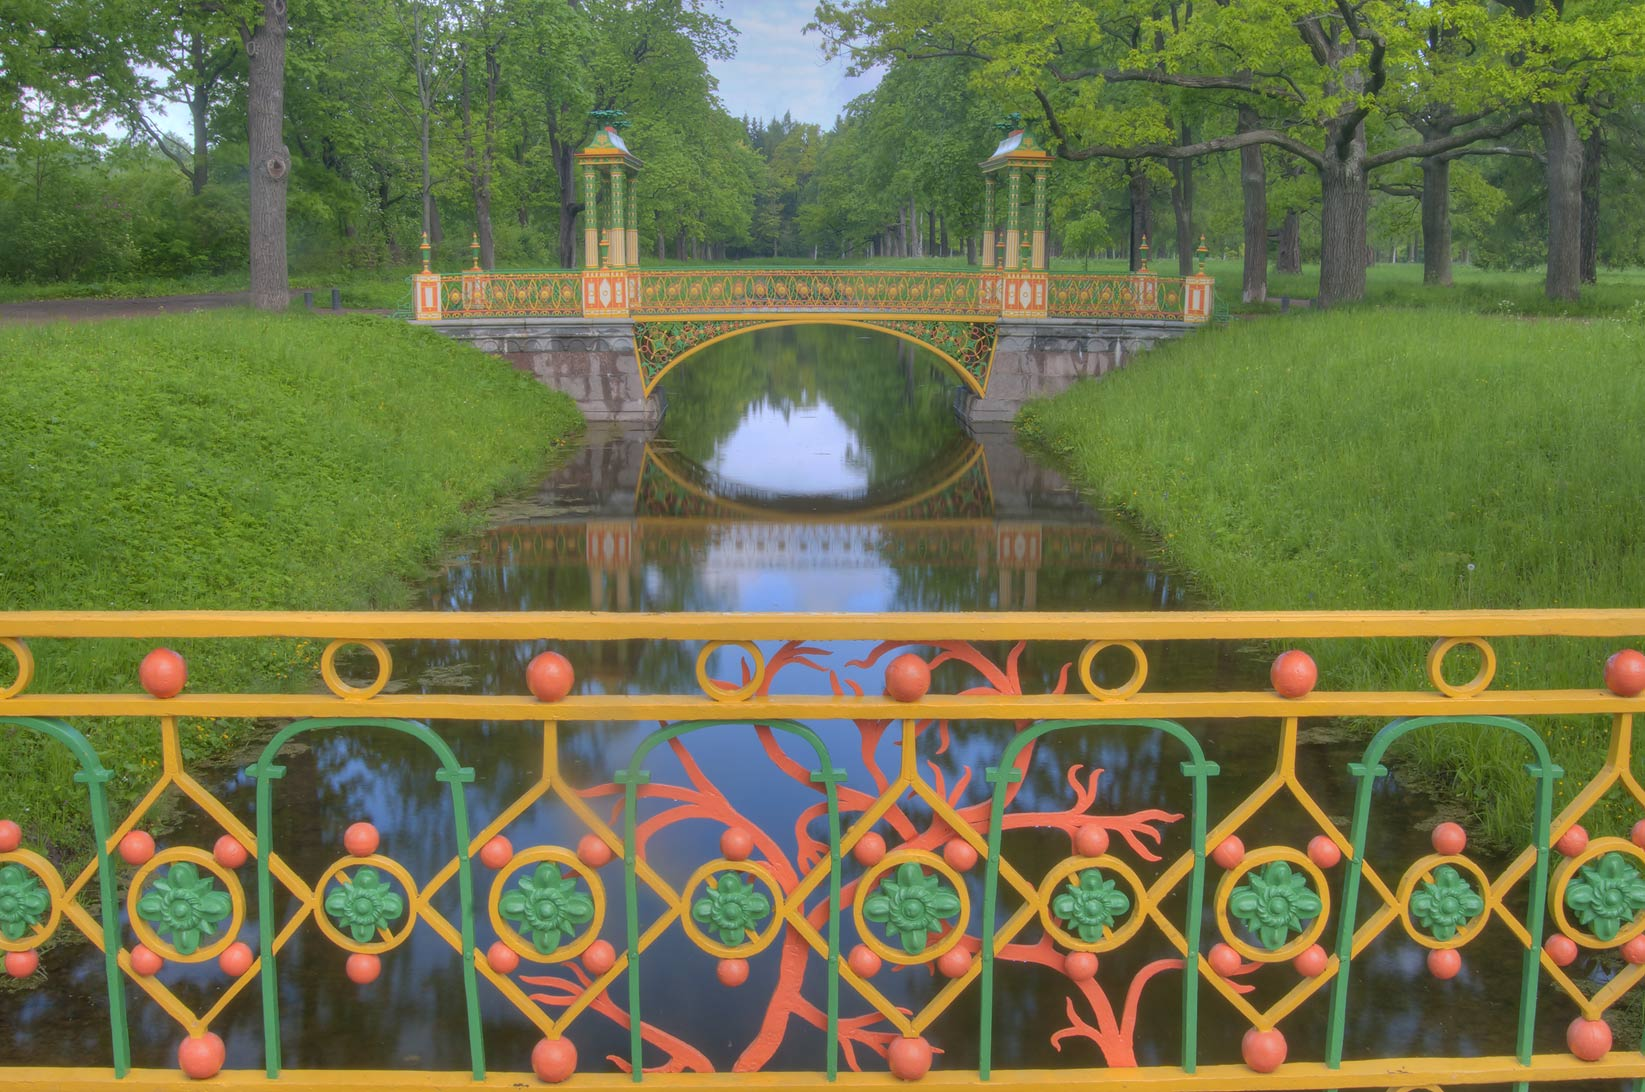 Small Chinese Bridges in Aleksandrovsky Park...south from St.Petersburg, Russia